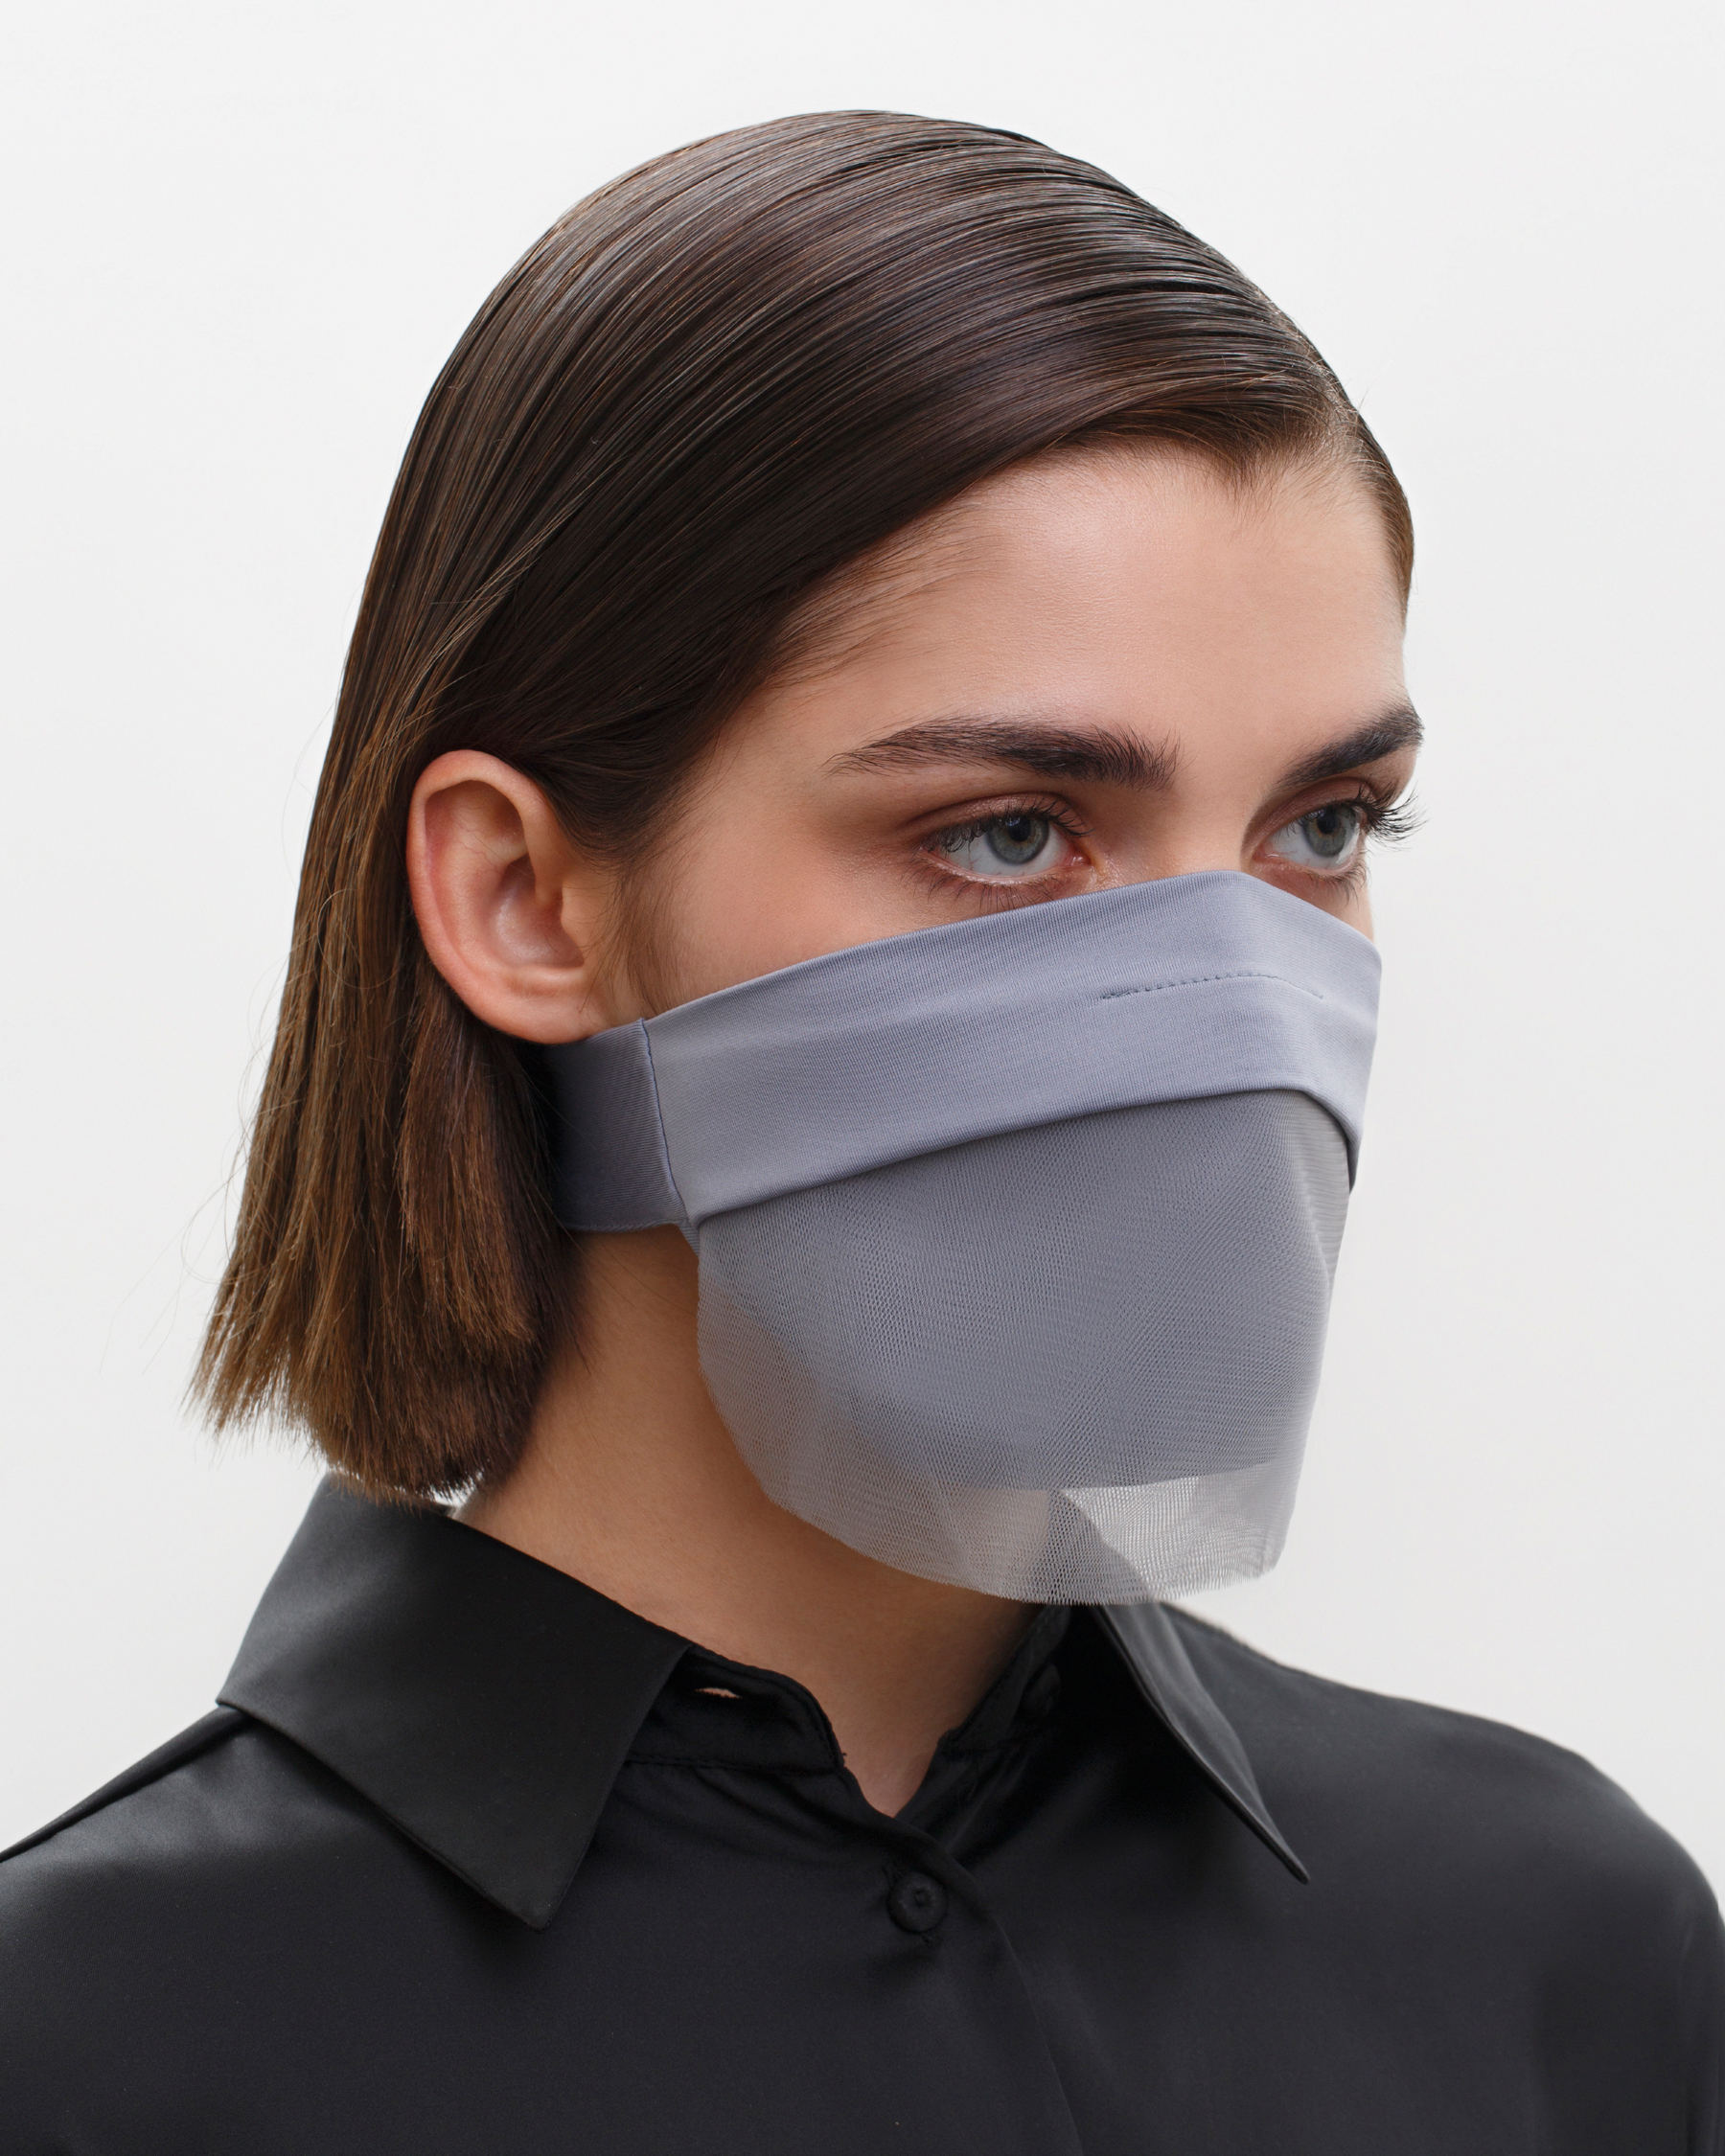 FAKBYFAK  Fashion Face Covering with a Veil, Ear Strap-Free. The FAKOUT. Grey Code: FBF-42102-03